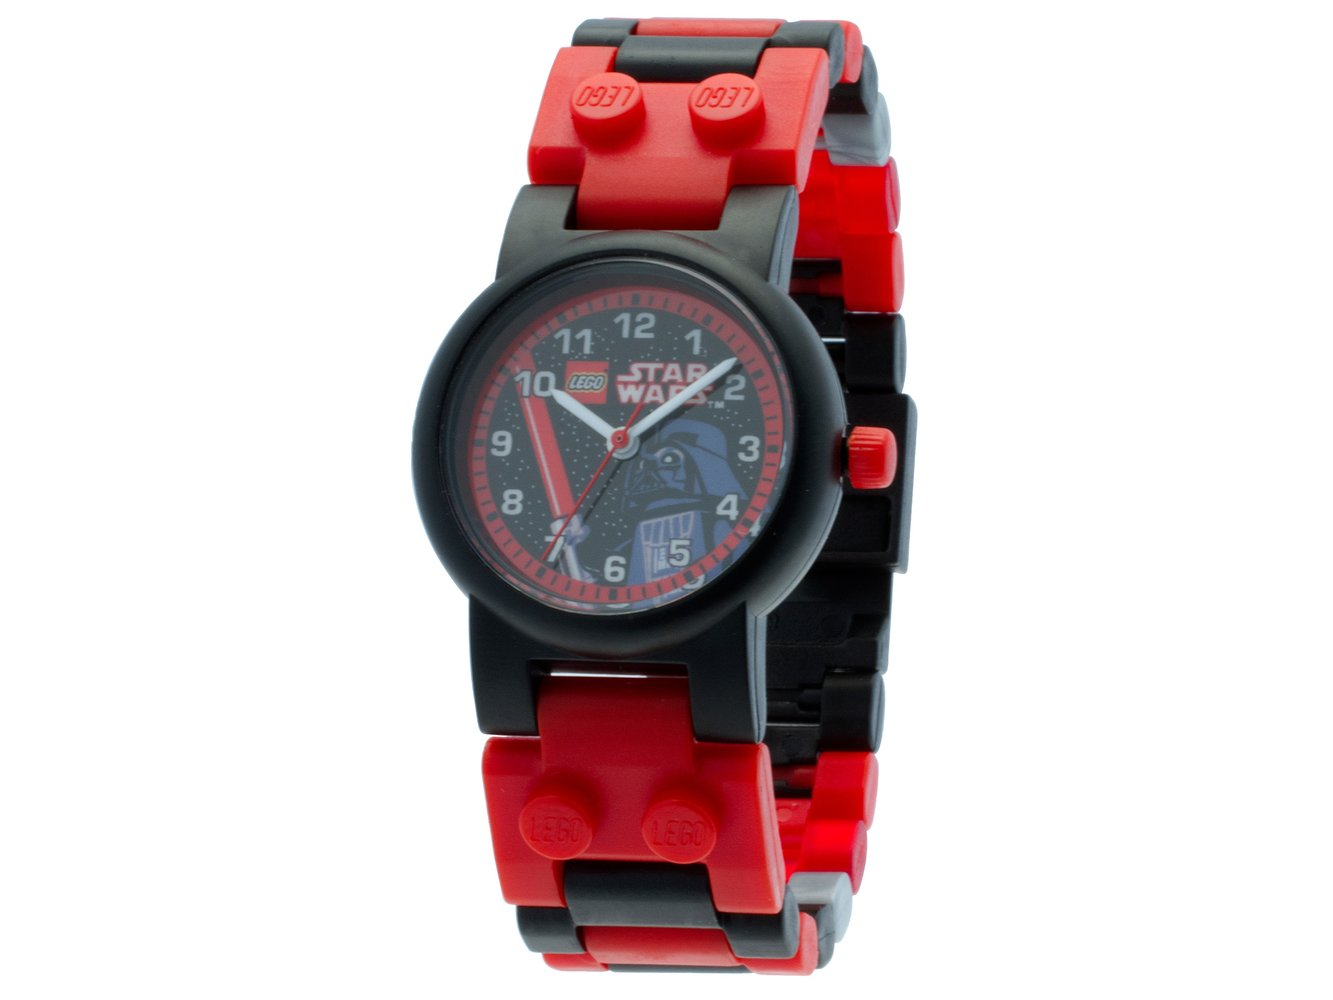 Darth Vader Buildable Watch